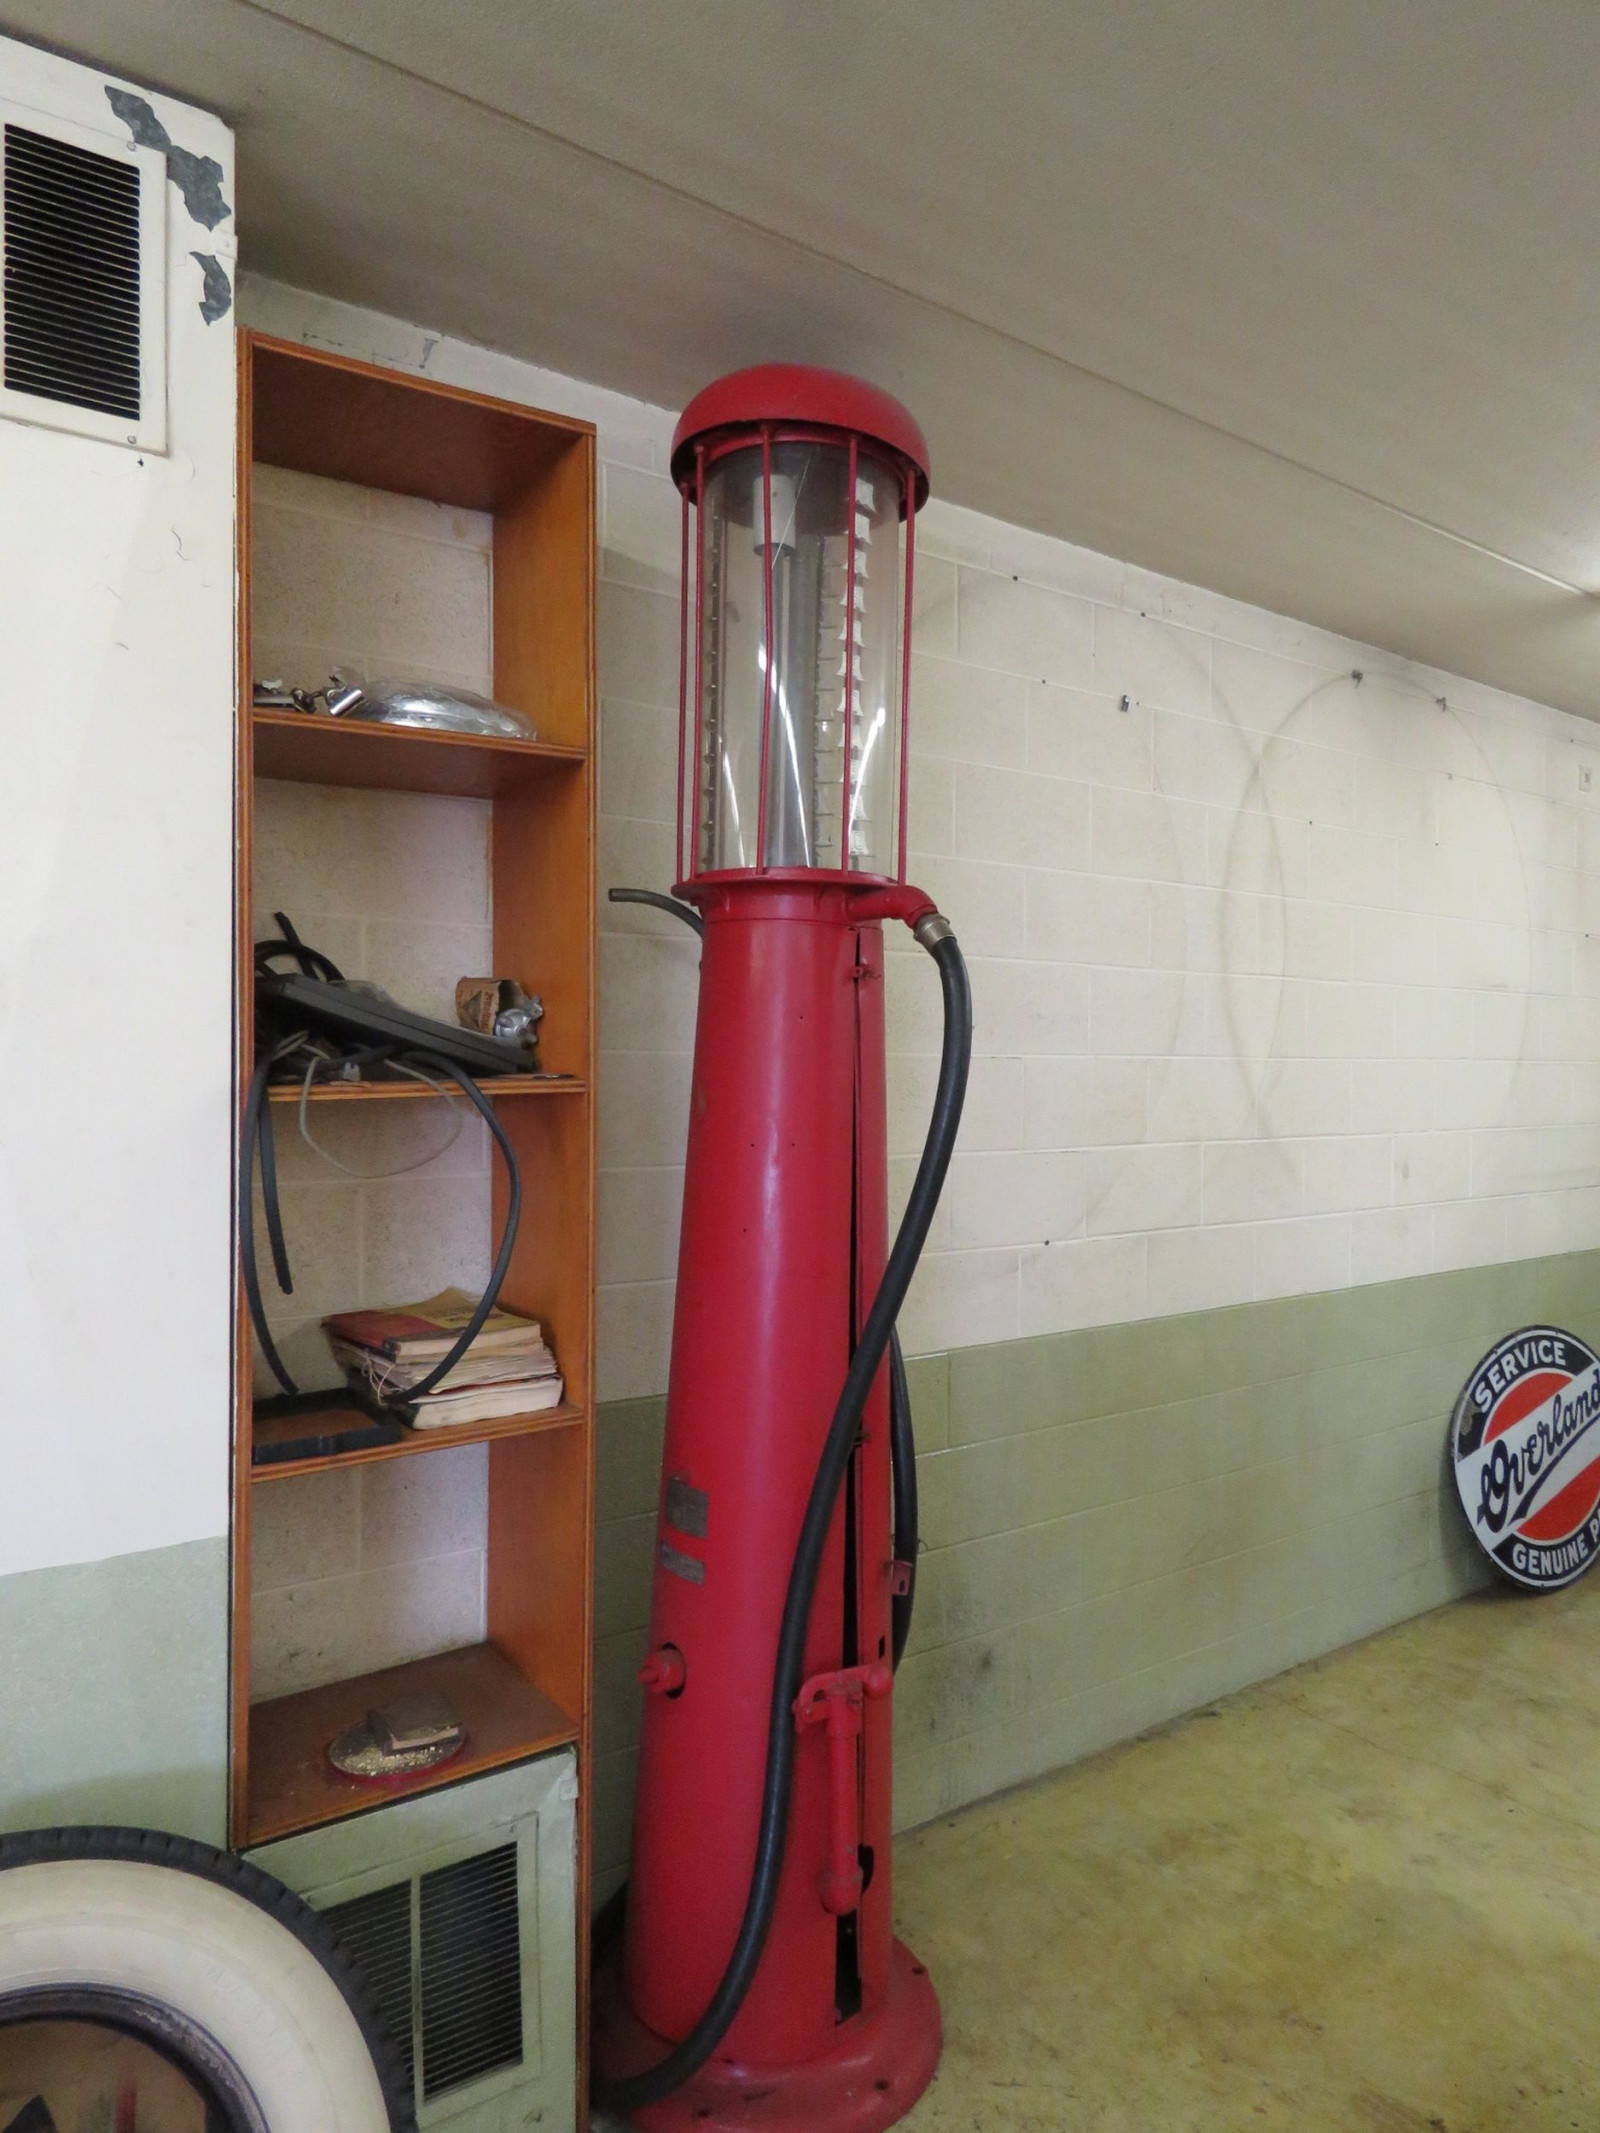 Wayne Upright Visible 10 Gallon Gas Pump - Image 1